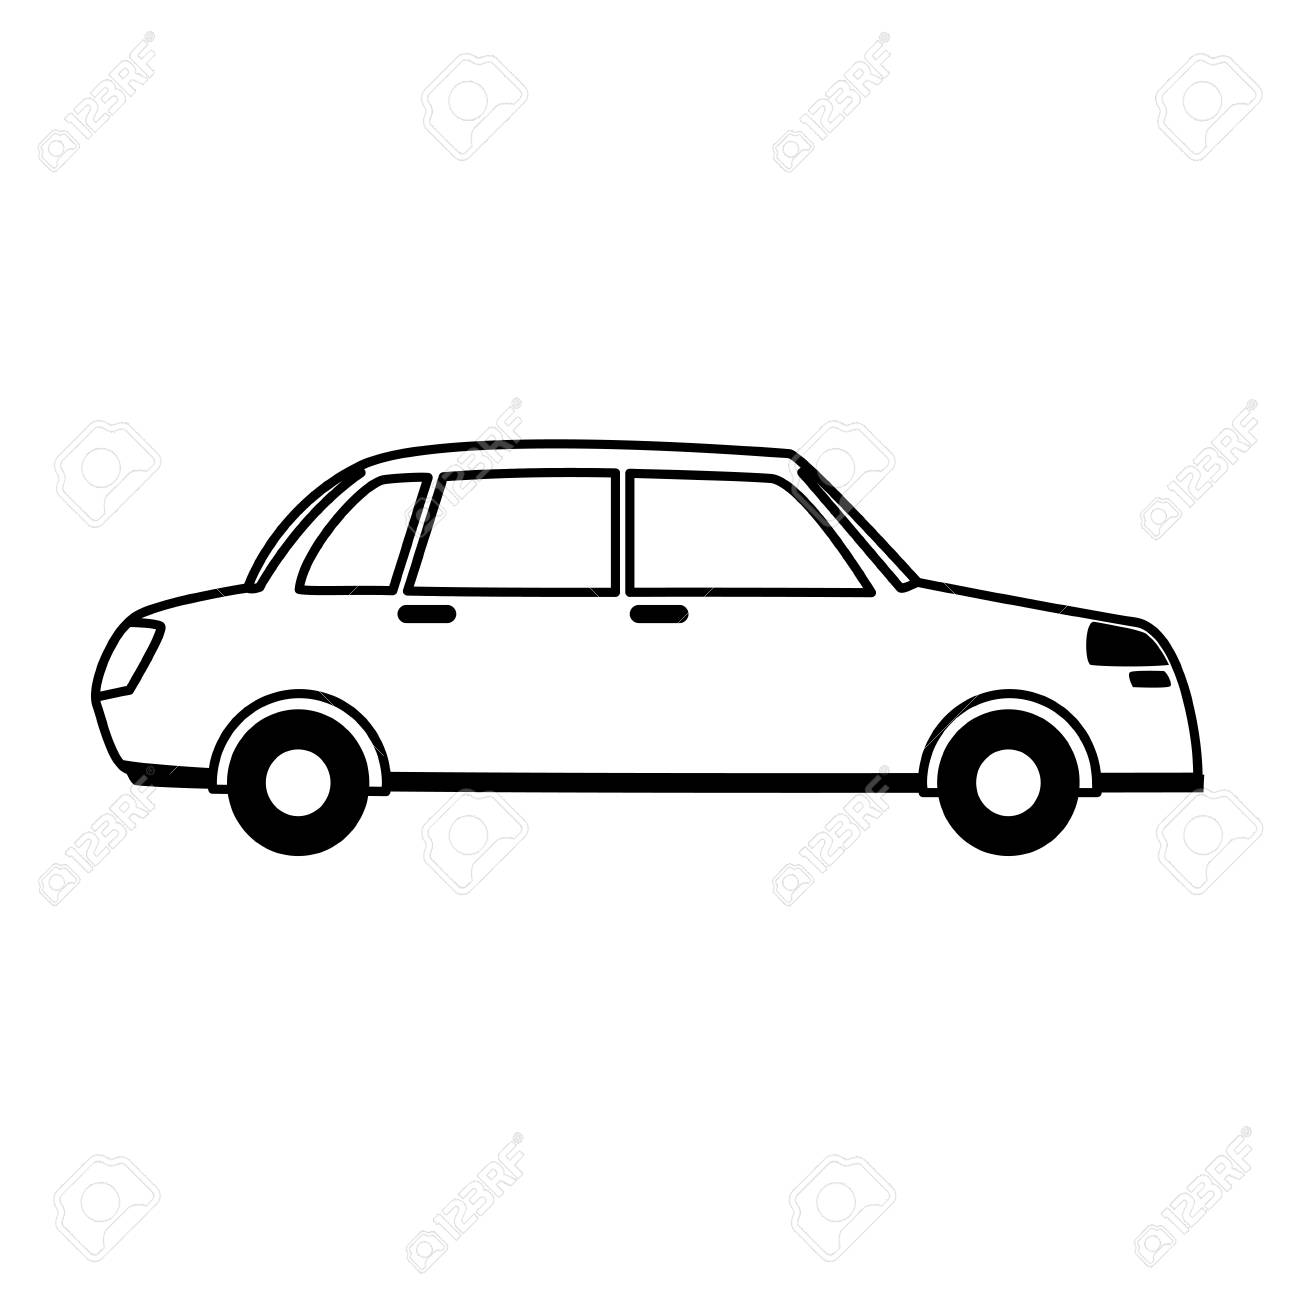 car sideview icon image vector illustration design black line.